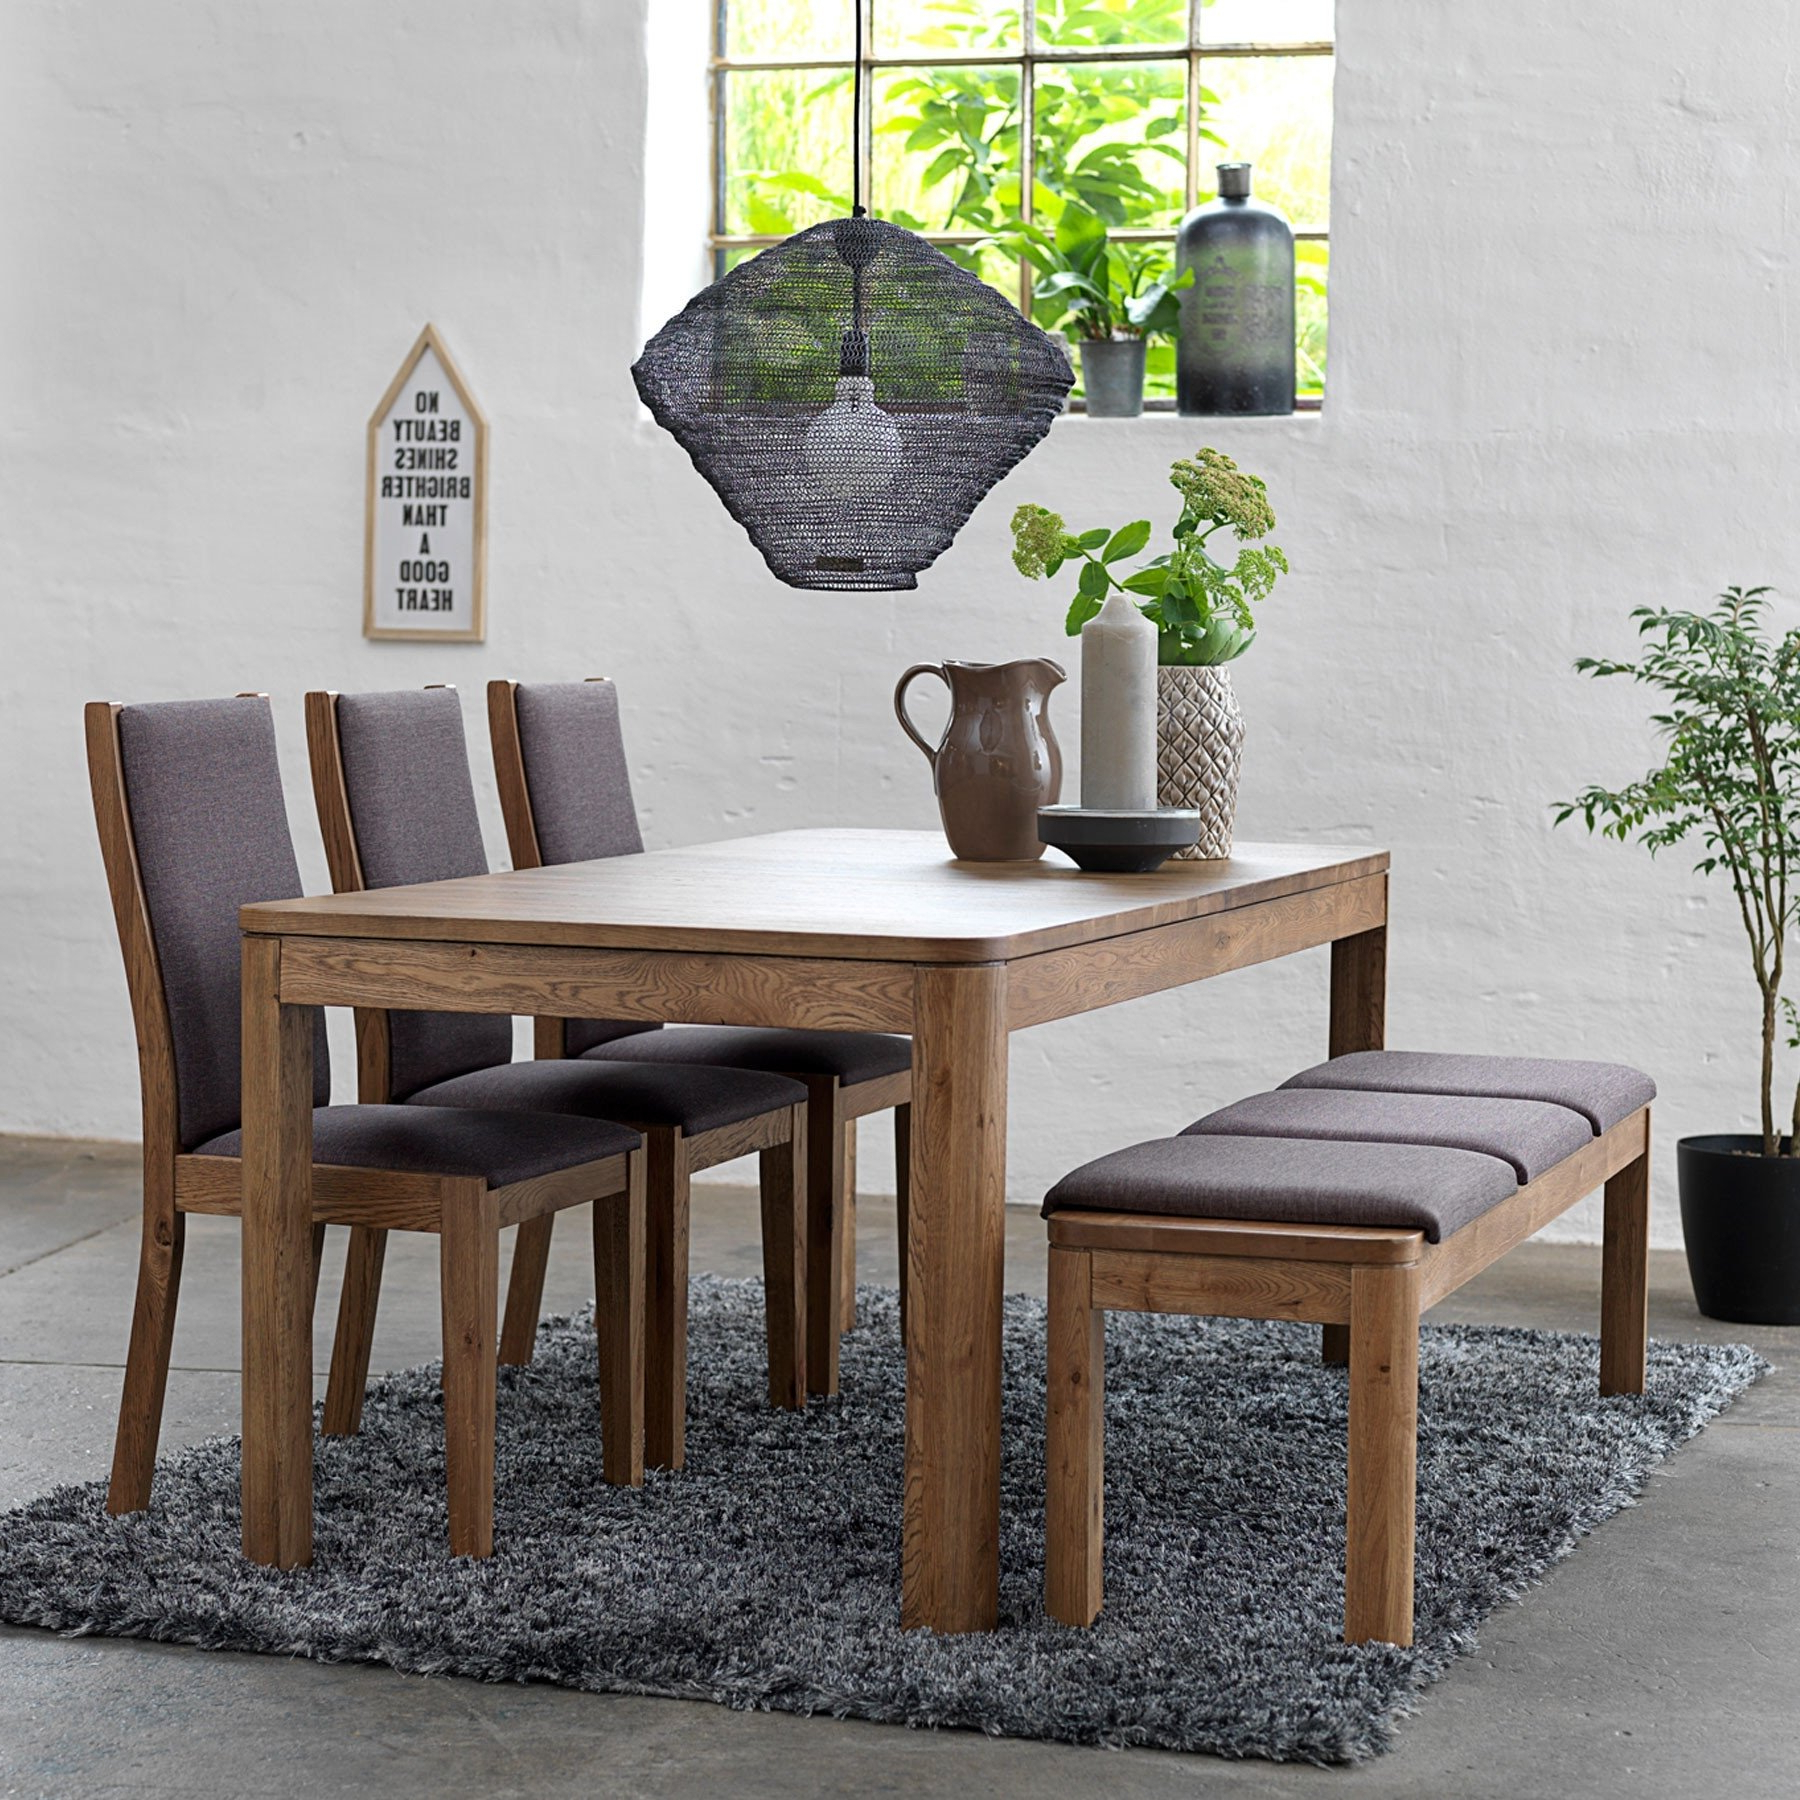 Most Up To Date 8 Seater Wood Contemporary Dining Tables With Extension Leaf In 3 Piece Dining Table And Chairs Property With Bench Visual (View 5 of 25)